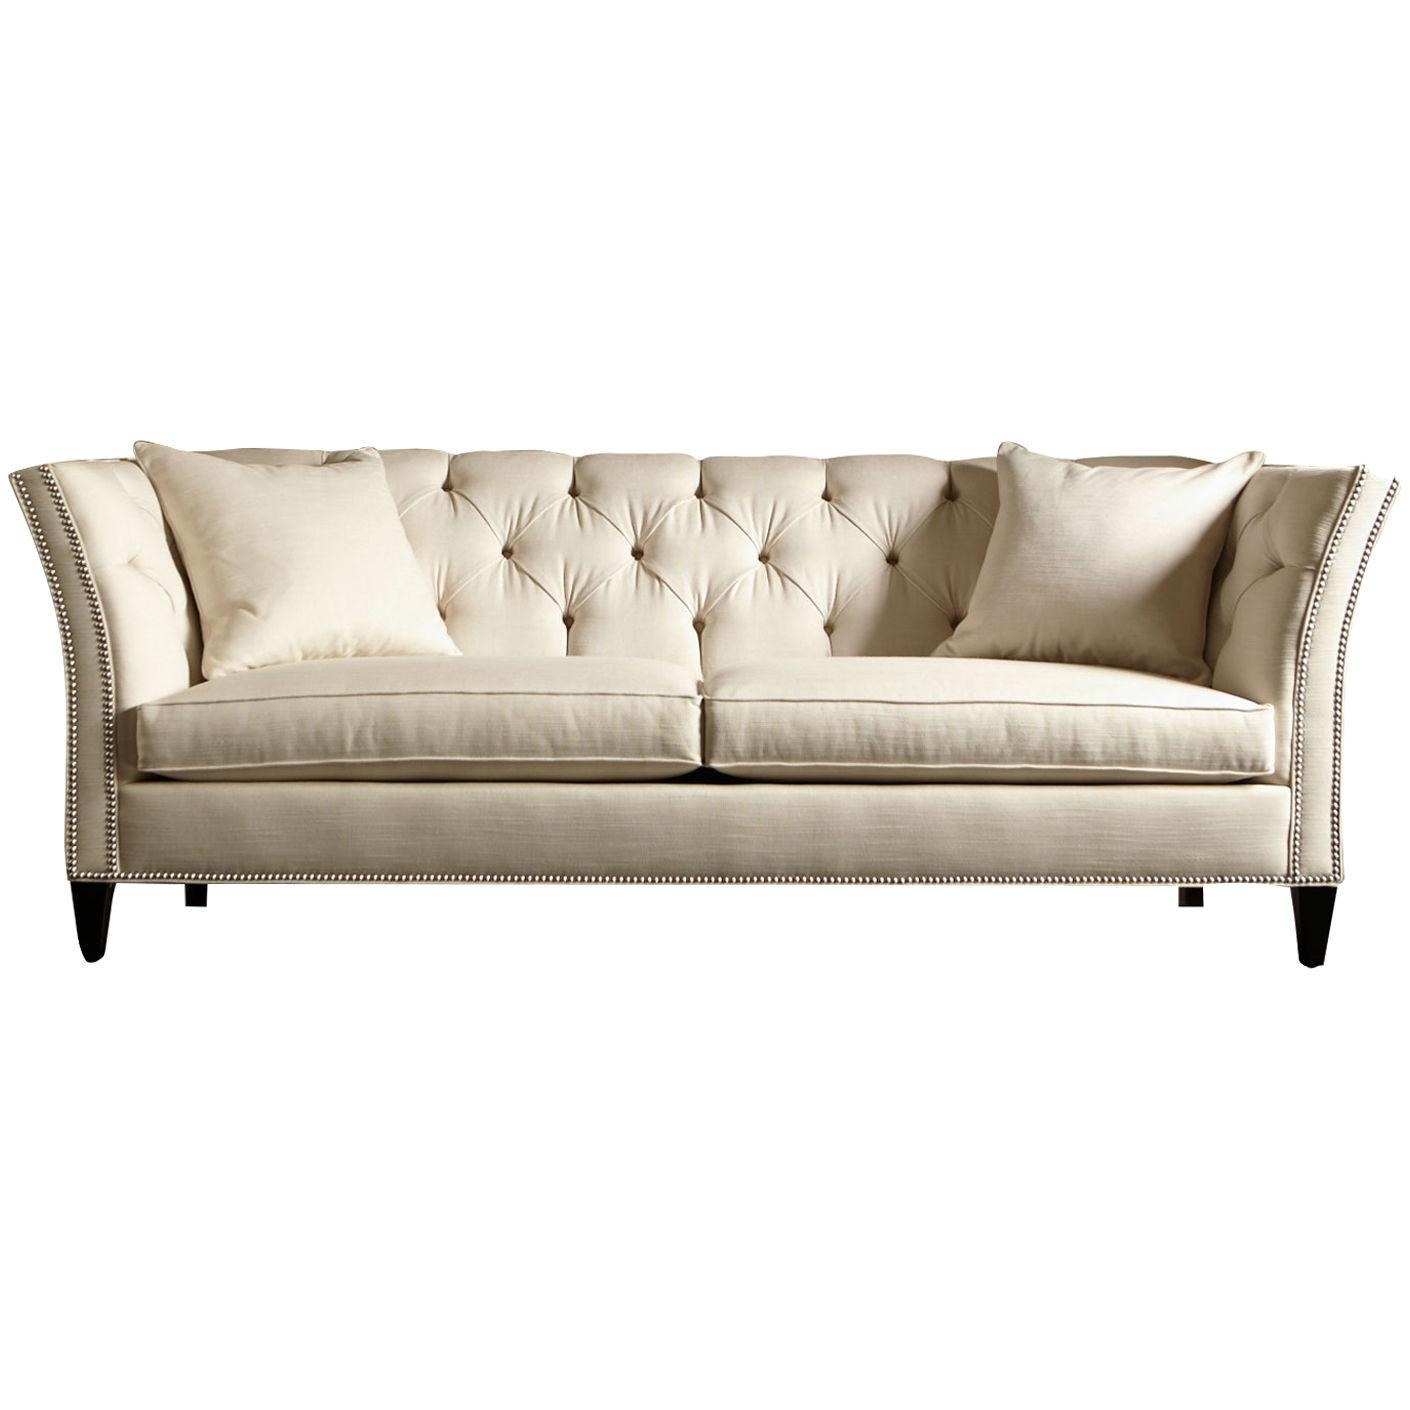 20 Choices Of Ethan Allen Whitney Sofas Sofa Ideas